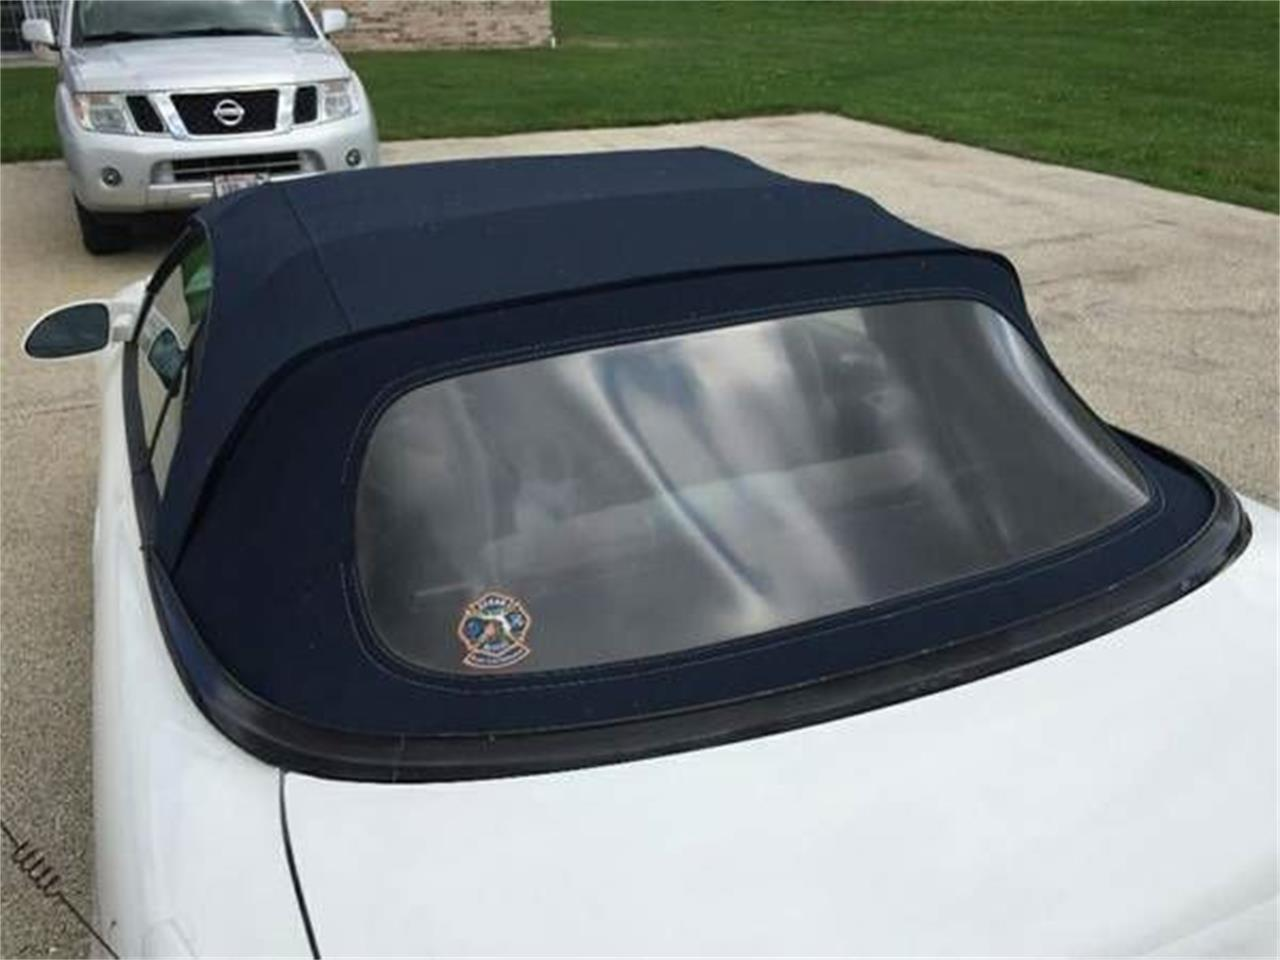 Large Picture of 1993 Toyota Celica located in Cadillac Michigan - $6,095.00 Offered by Classic Car Deals - O0KQ